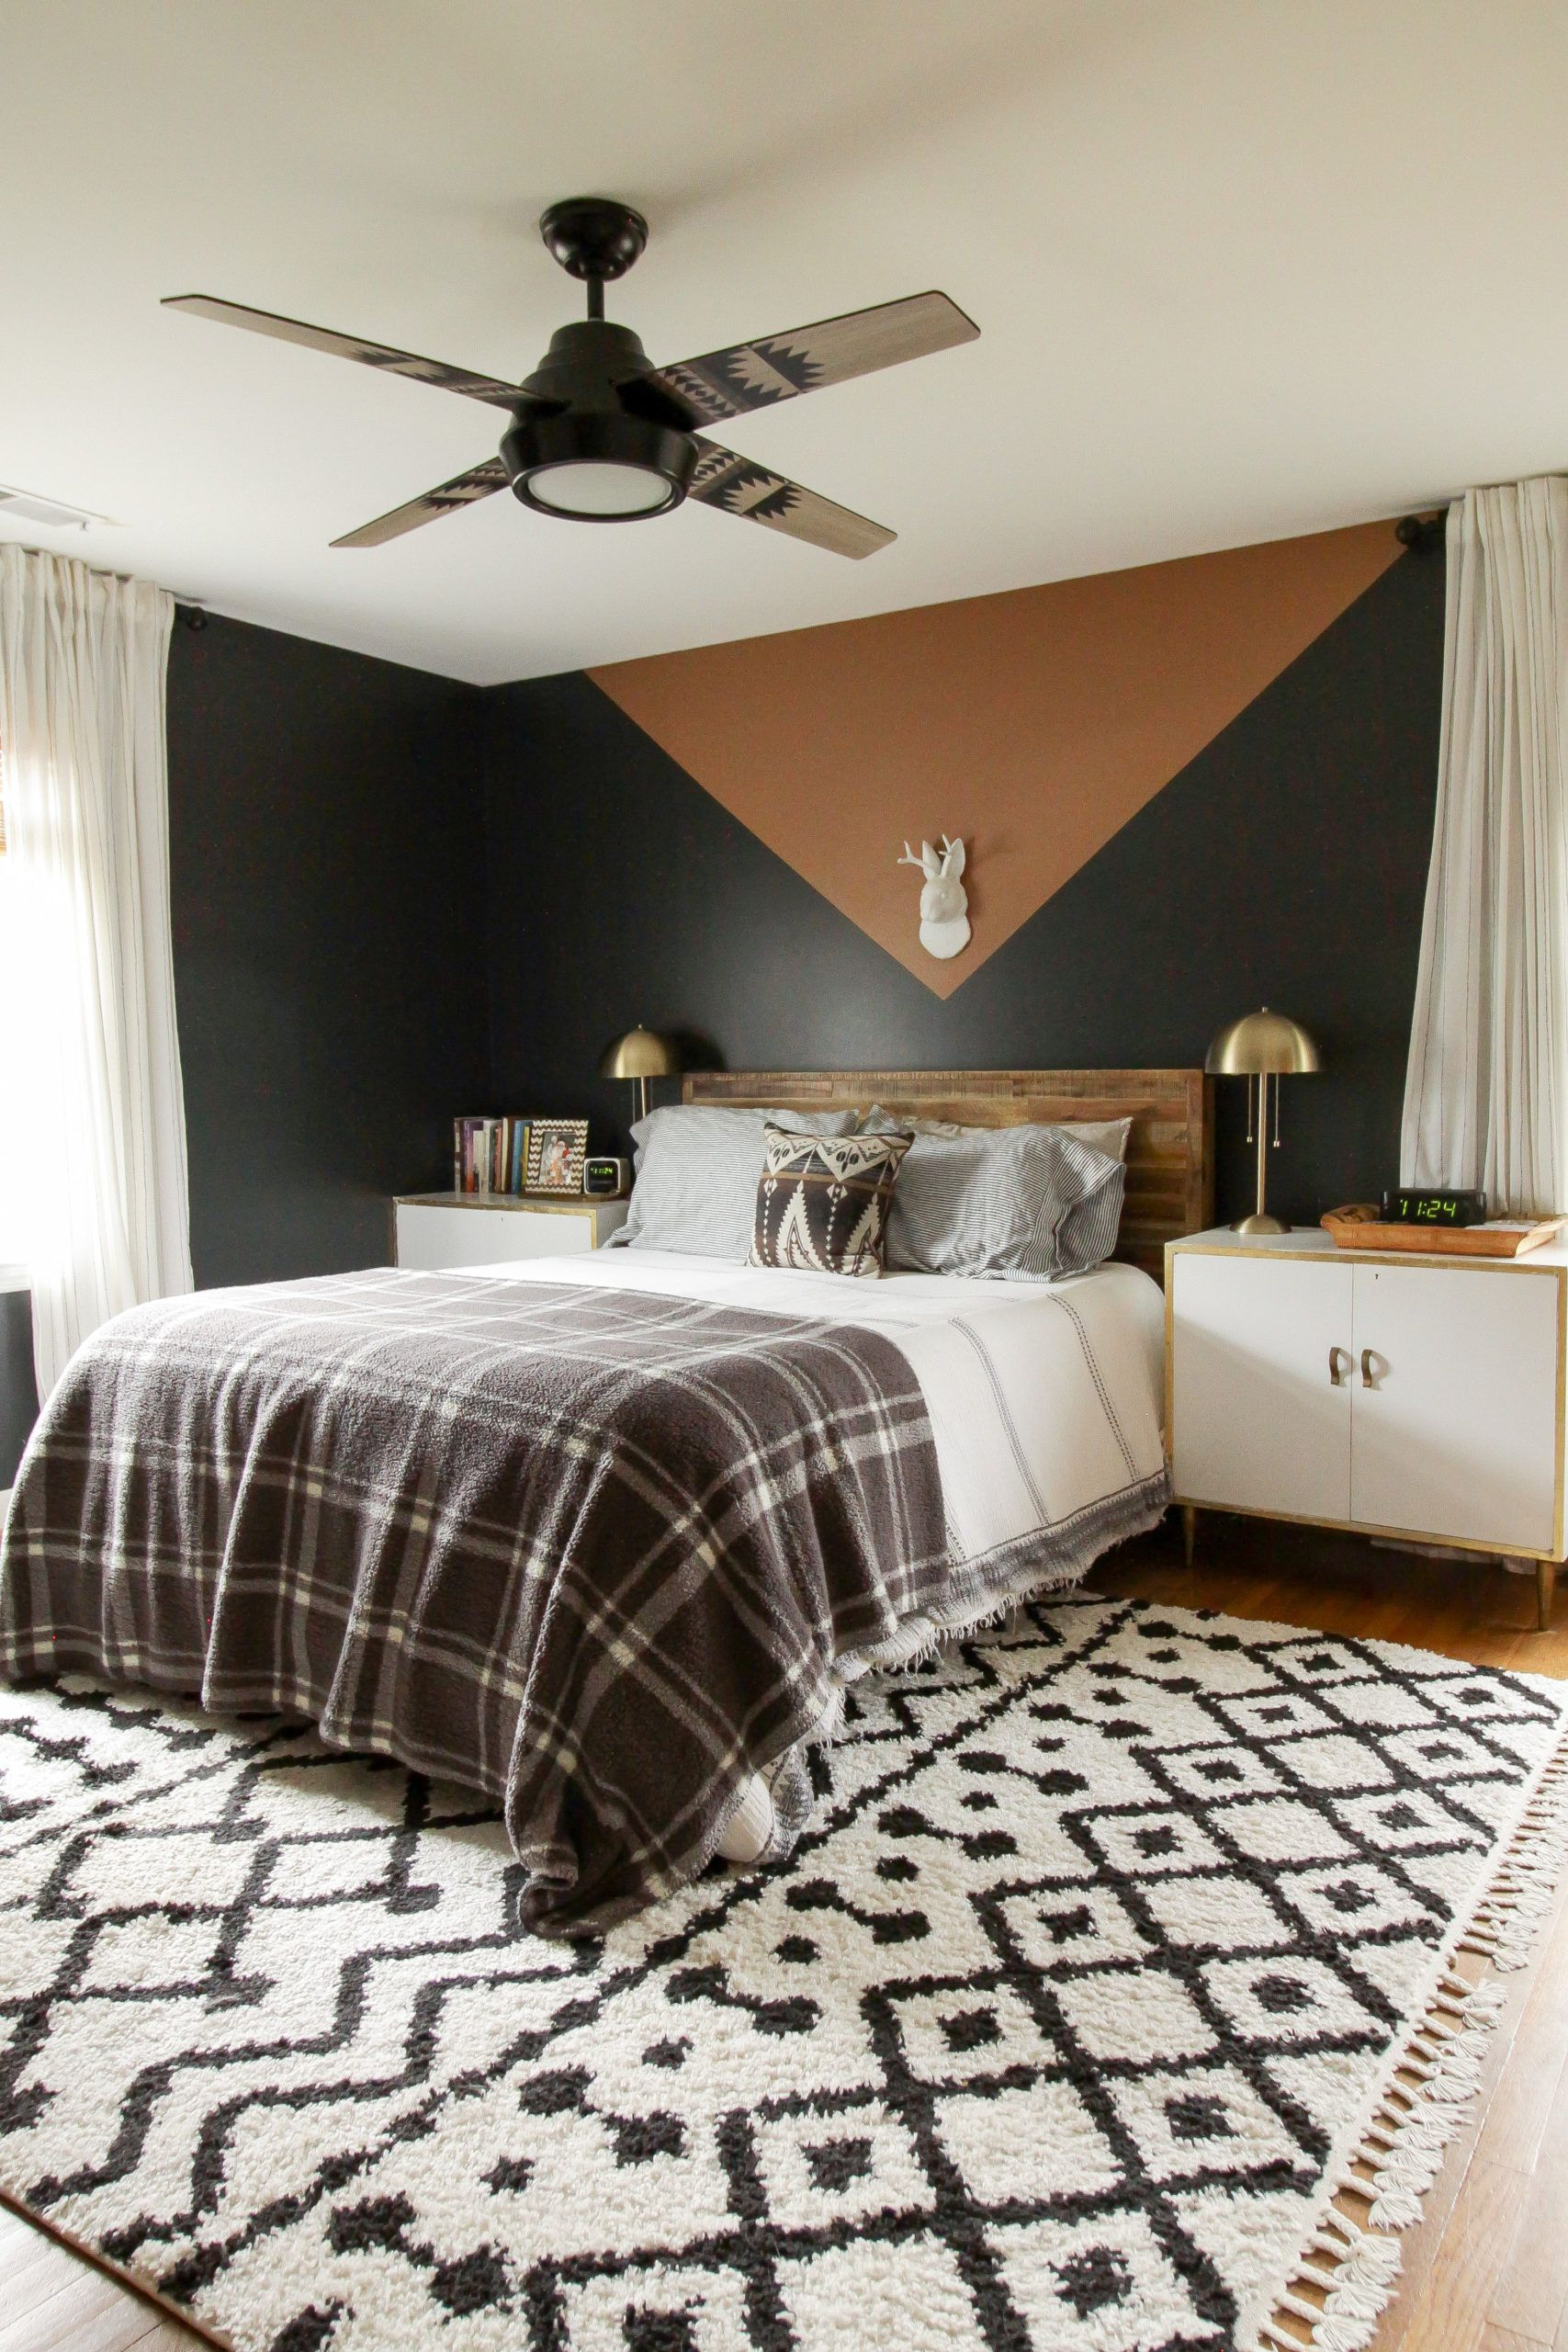 How To Select Bedroom Ceiling Fans With Lights Designalls In